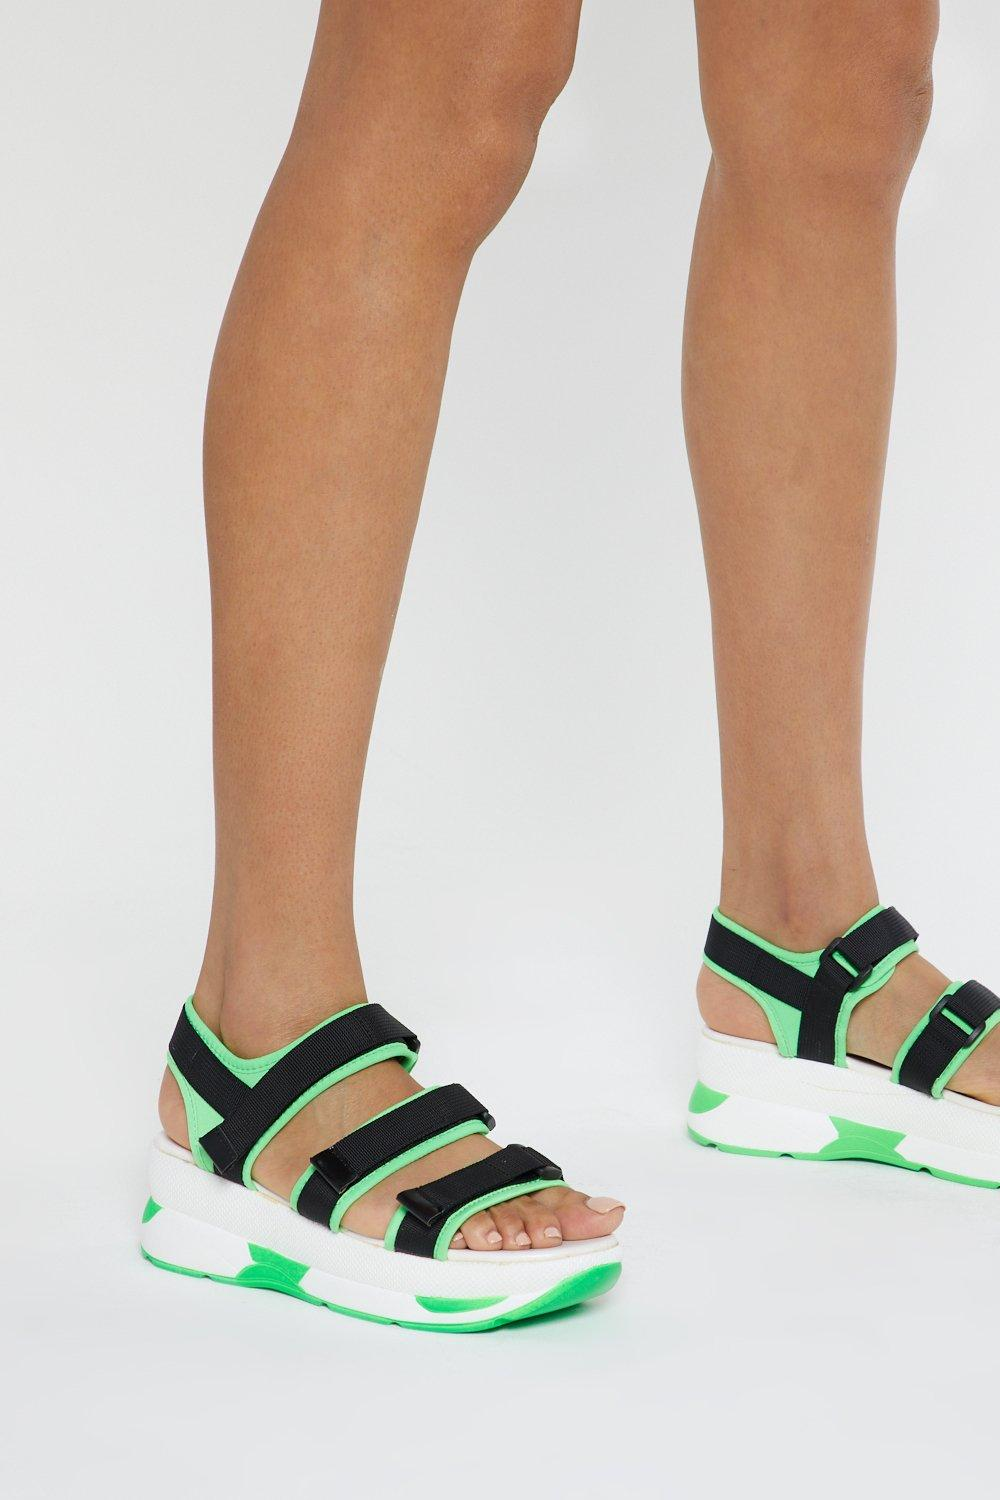 0bb869636ec Neon It Chunky Strappy Sandals | Shop Clothes at Nasty Gal!